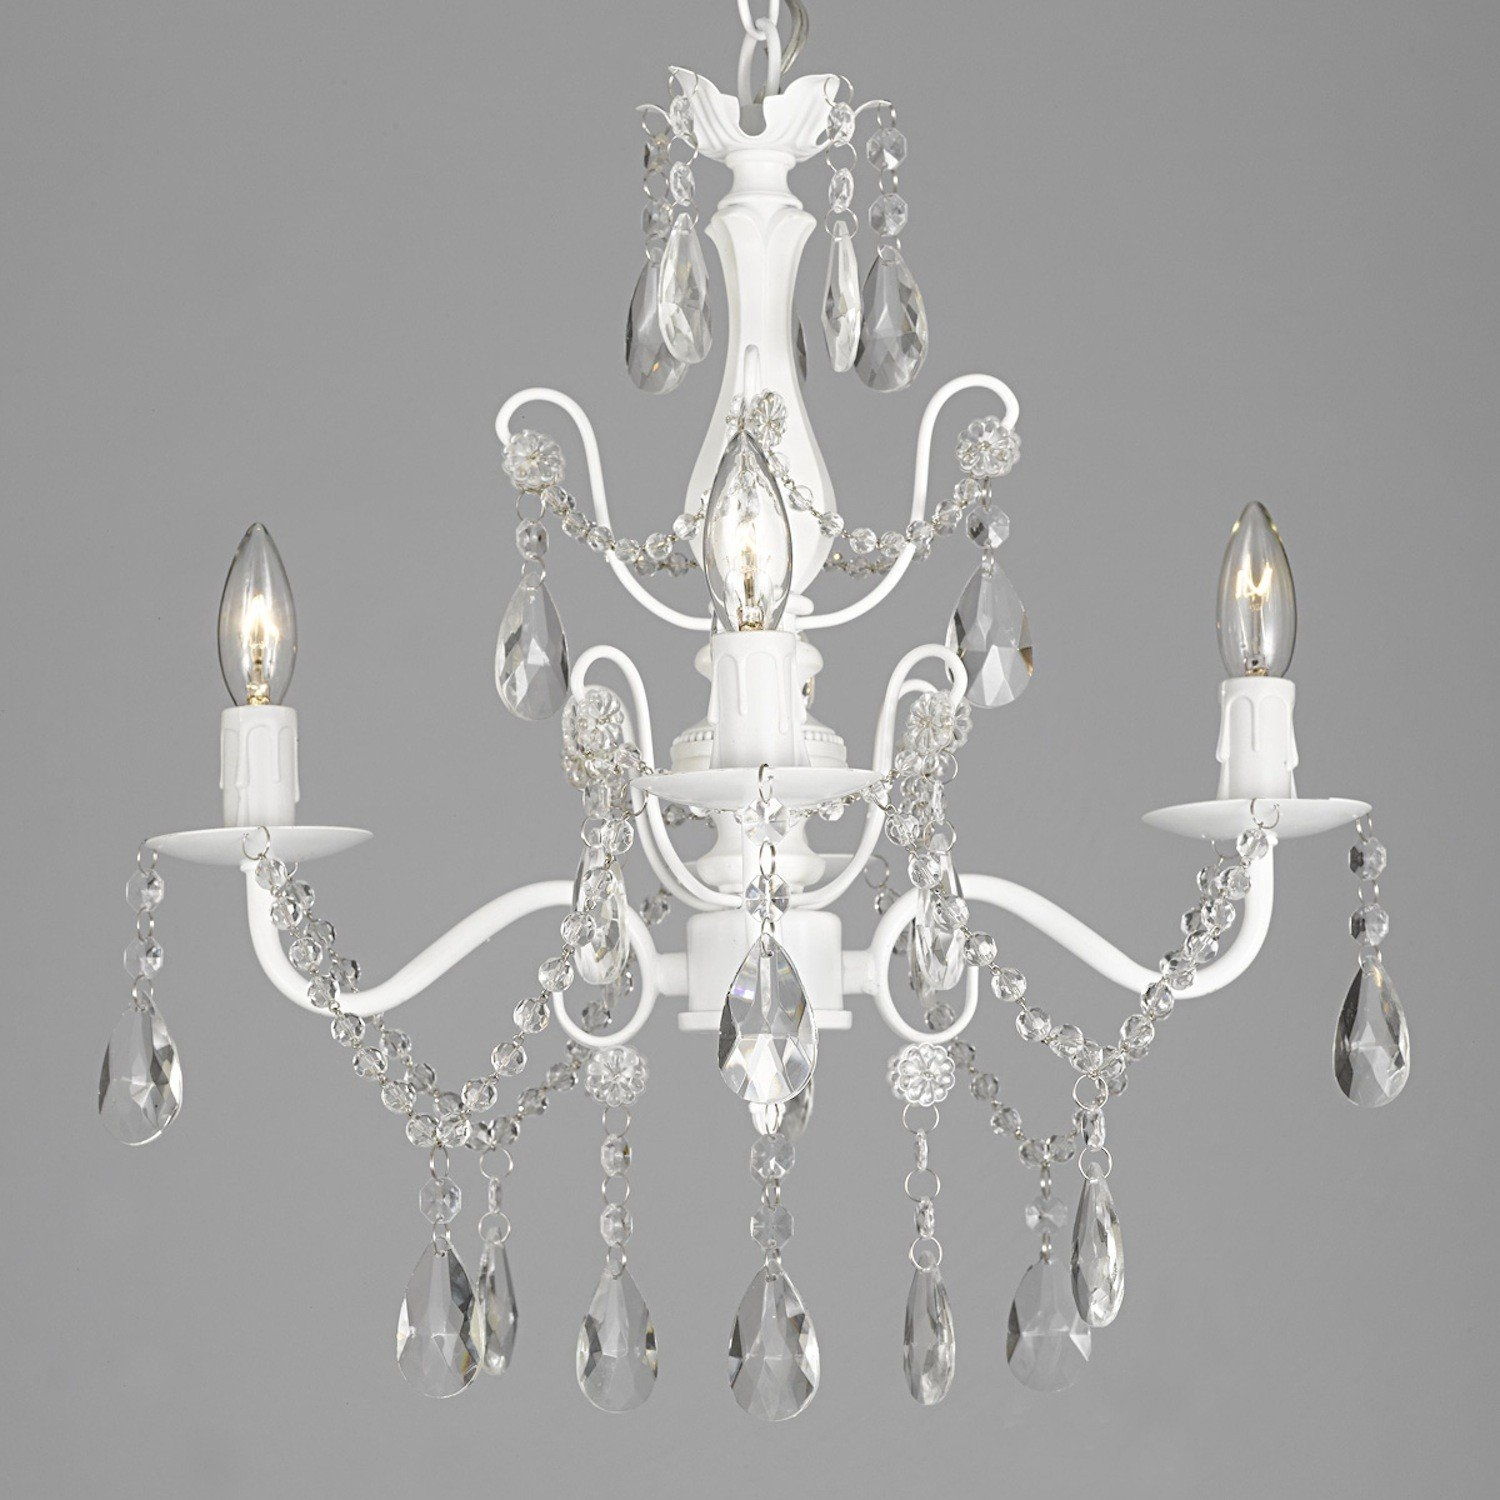 White Chandeliers Youll Love Wayfair Throughout White Chandeliers (Image 14 of 15)